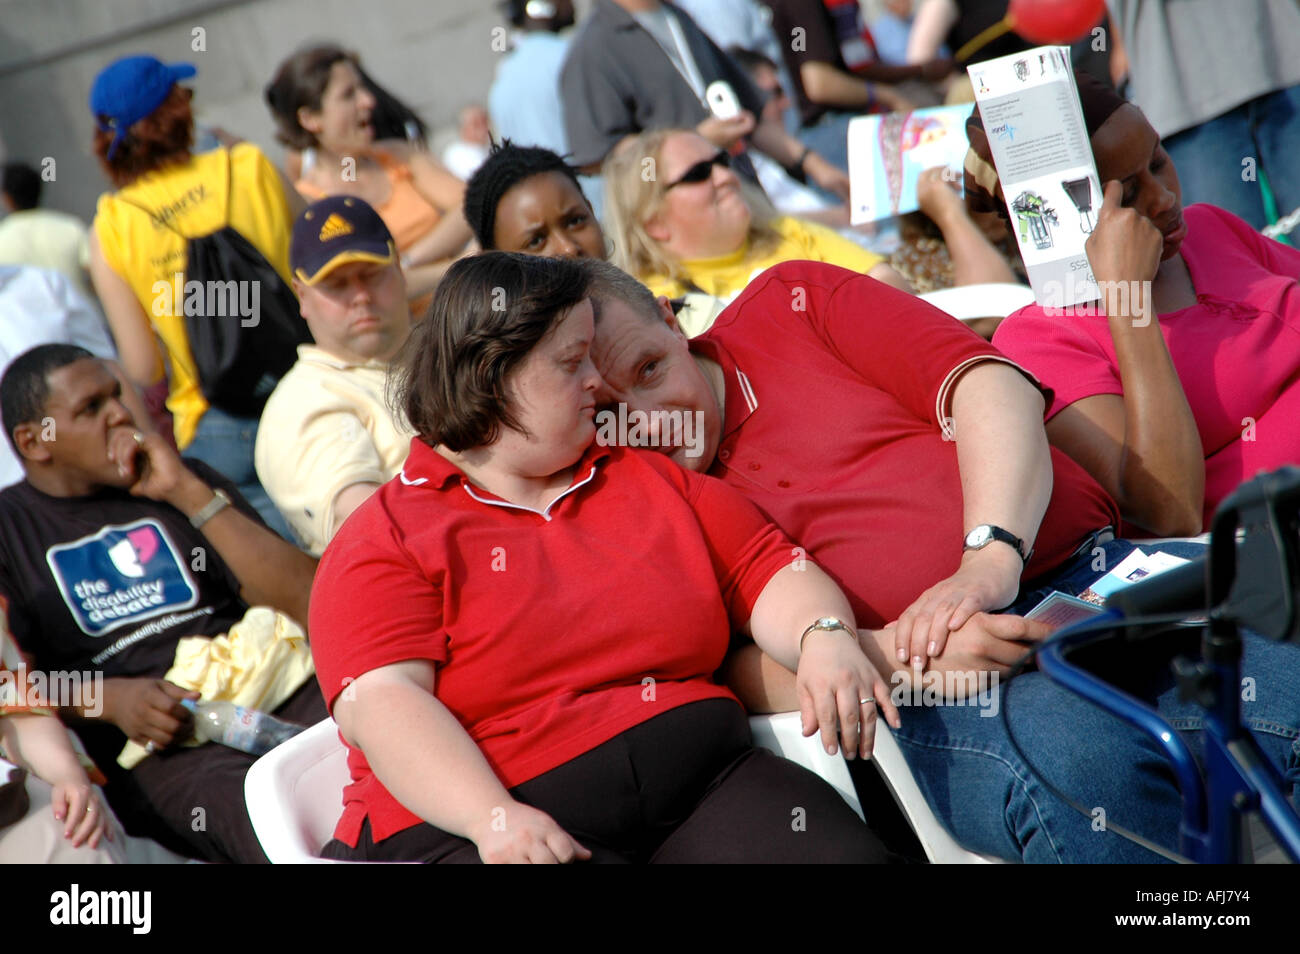 Disabled couple caught in a tender moment while watching the performances at the Liberty Festival, London - Stock Image